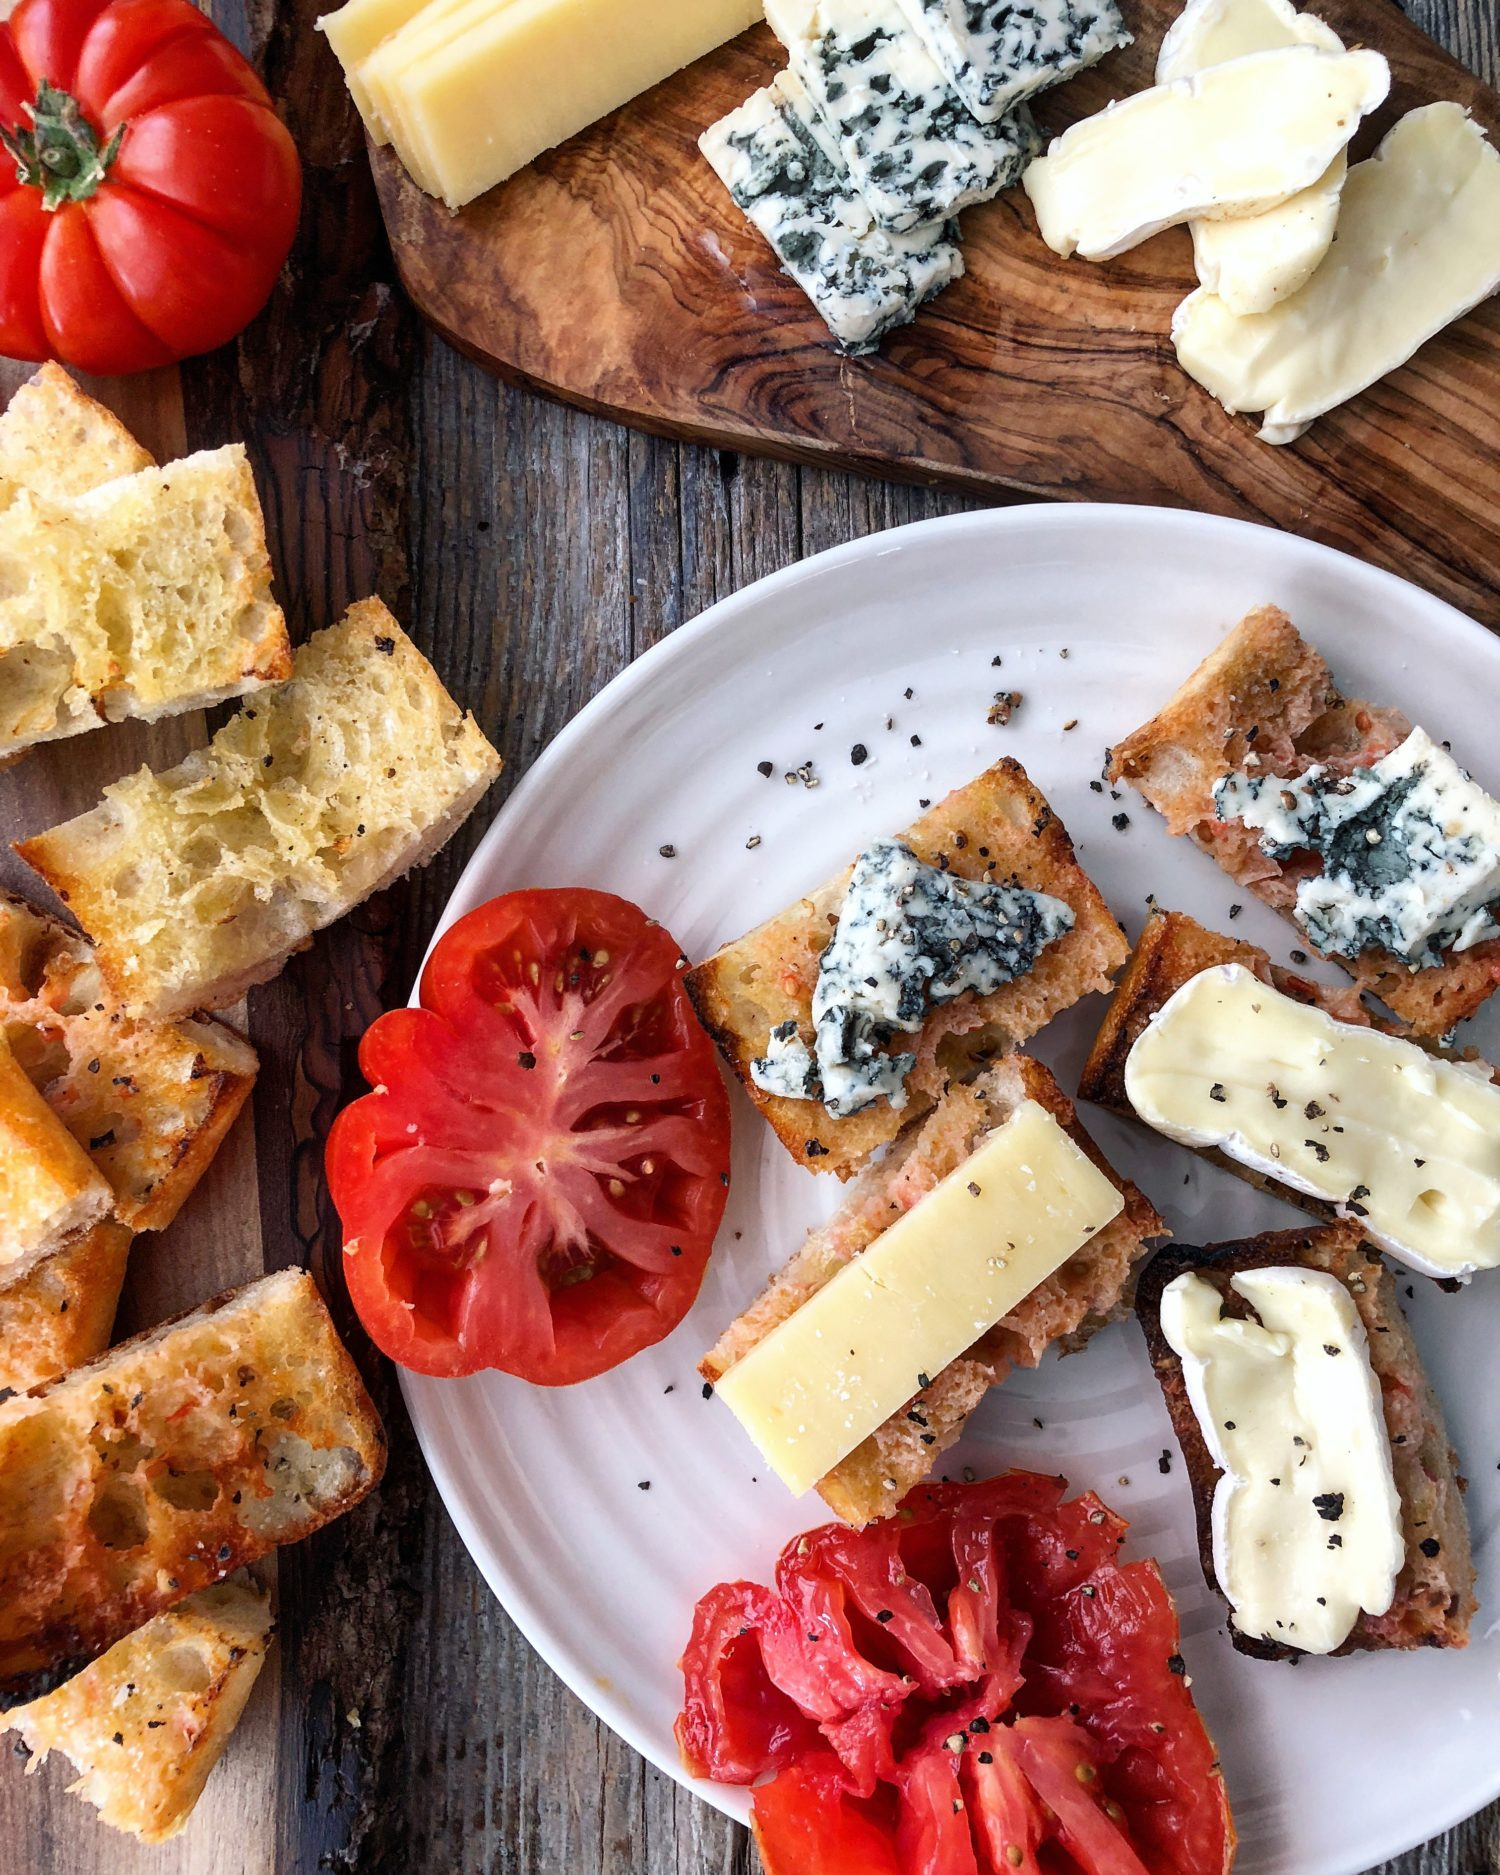 Grilled Ciabatta with Tomato and cheeses, pan con tomate